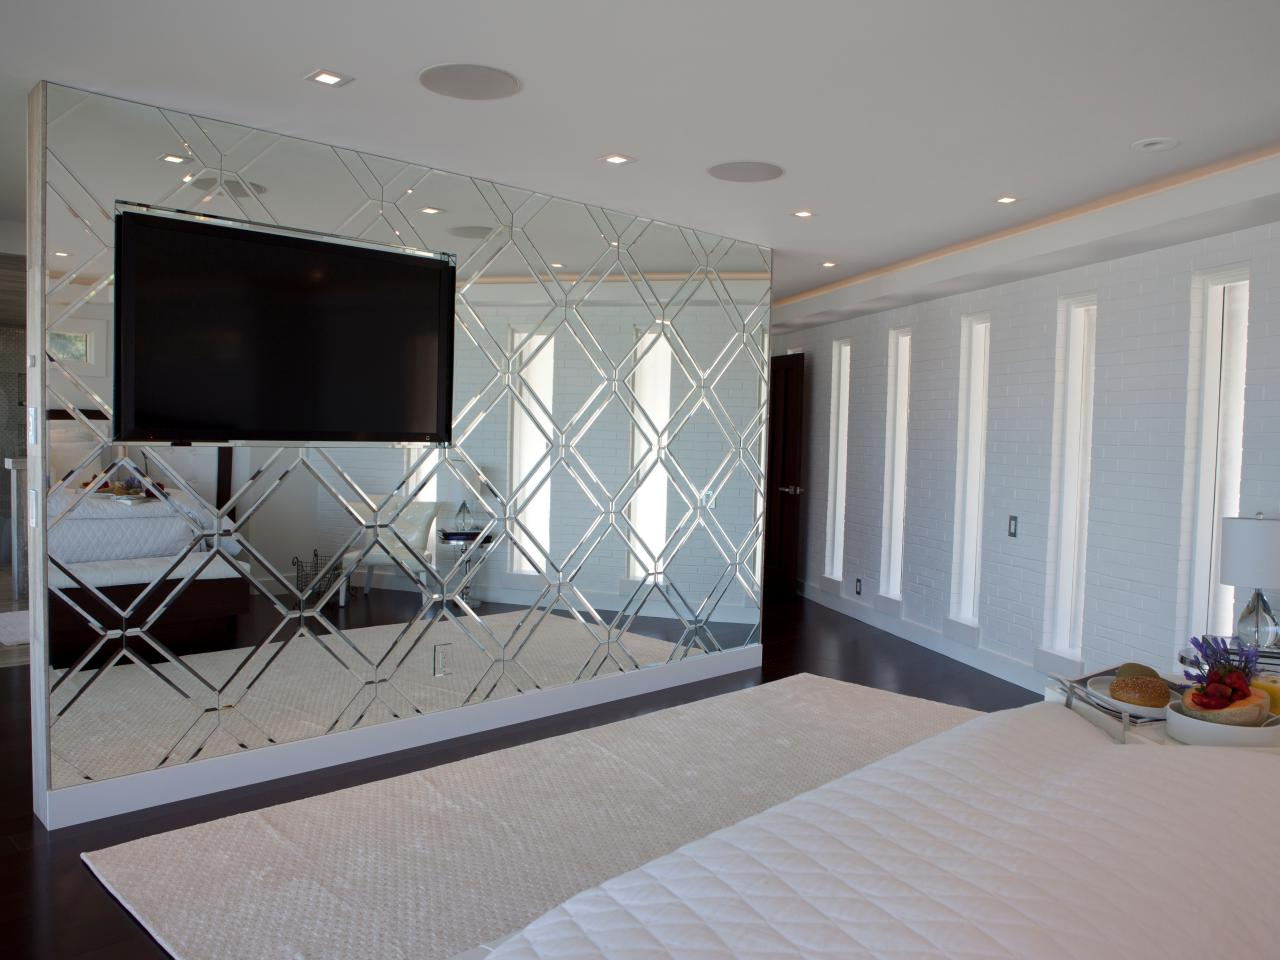 Wall Mirrors For Bedrooms With Regard To Most Recently Released Bedroom Wall Mirror Houzz Design Ideas Bathroom Mirrors (View 7 of 20)